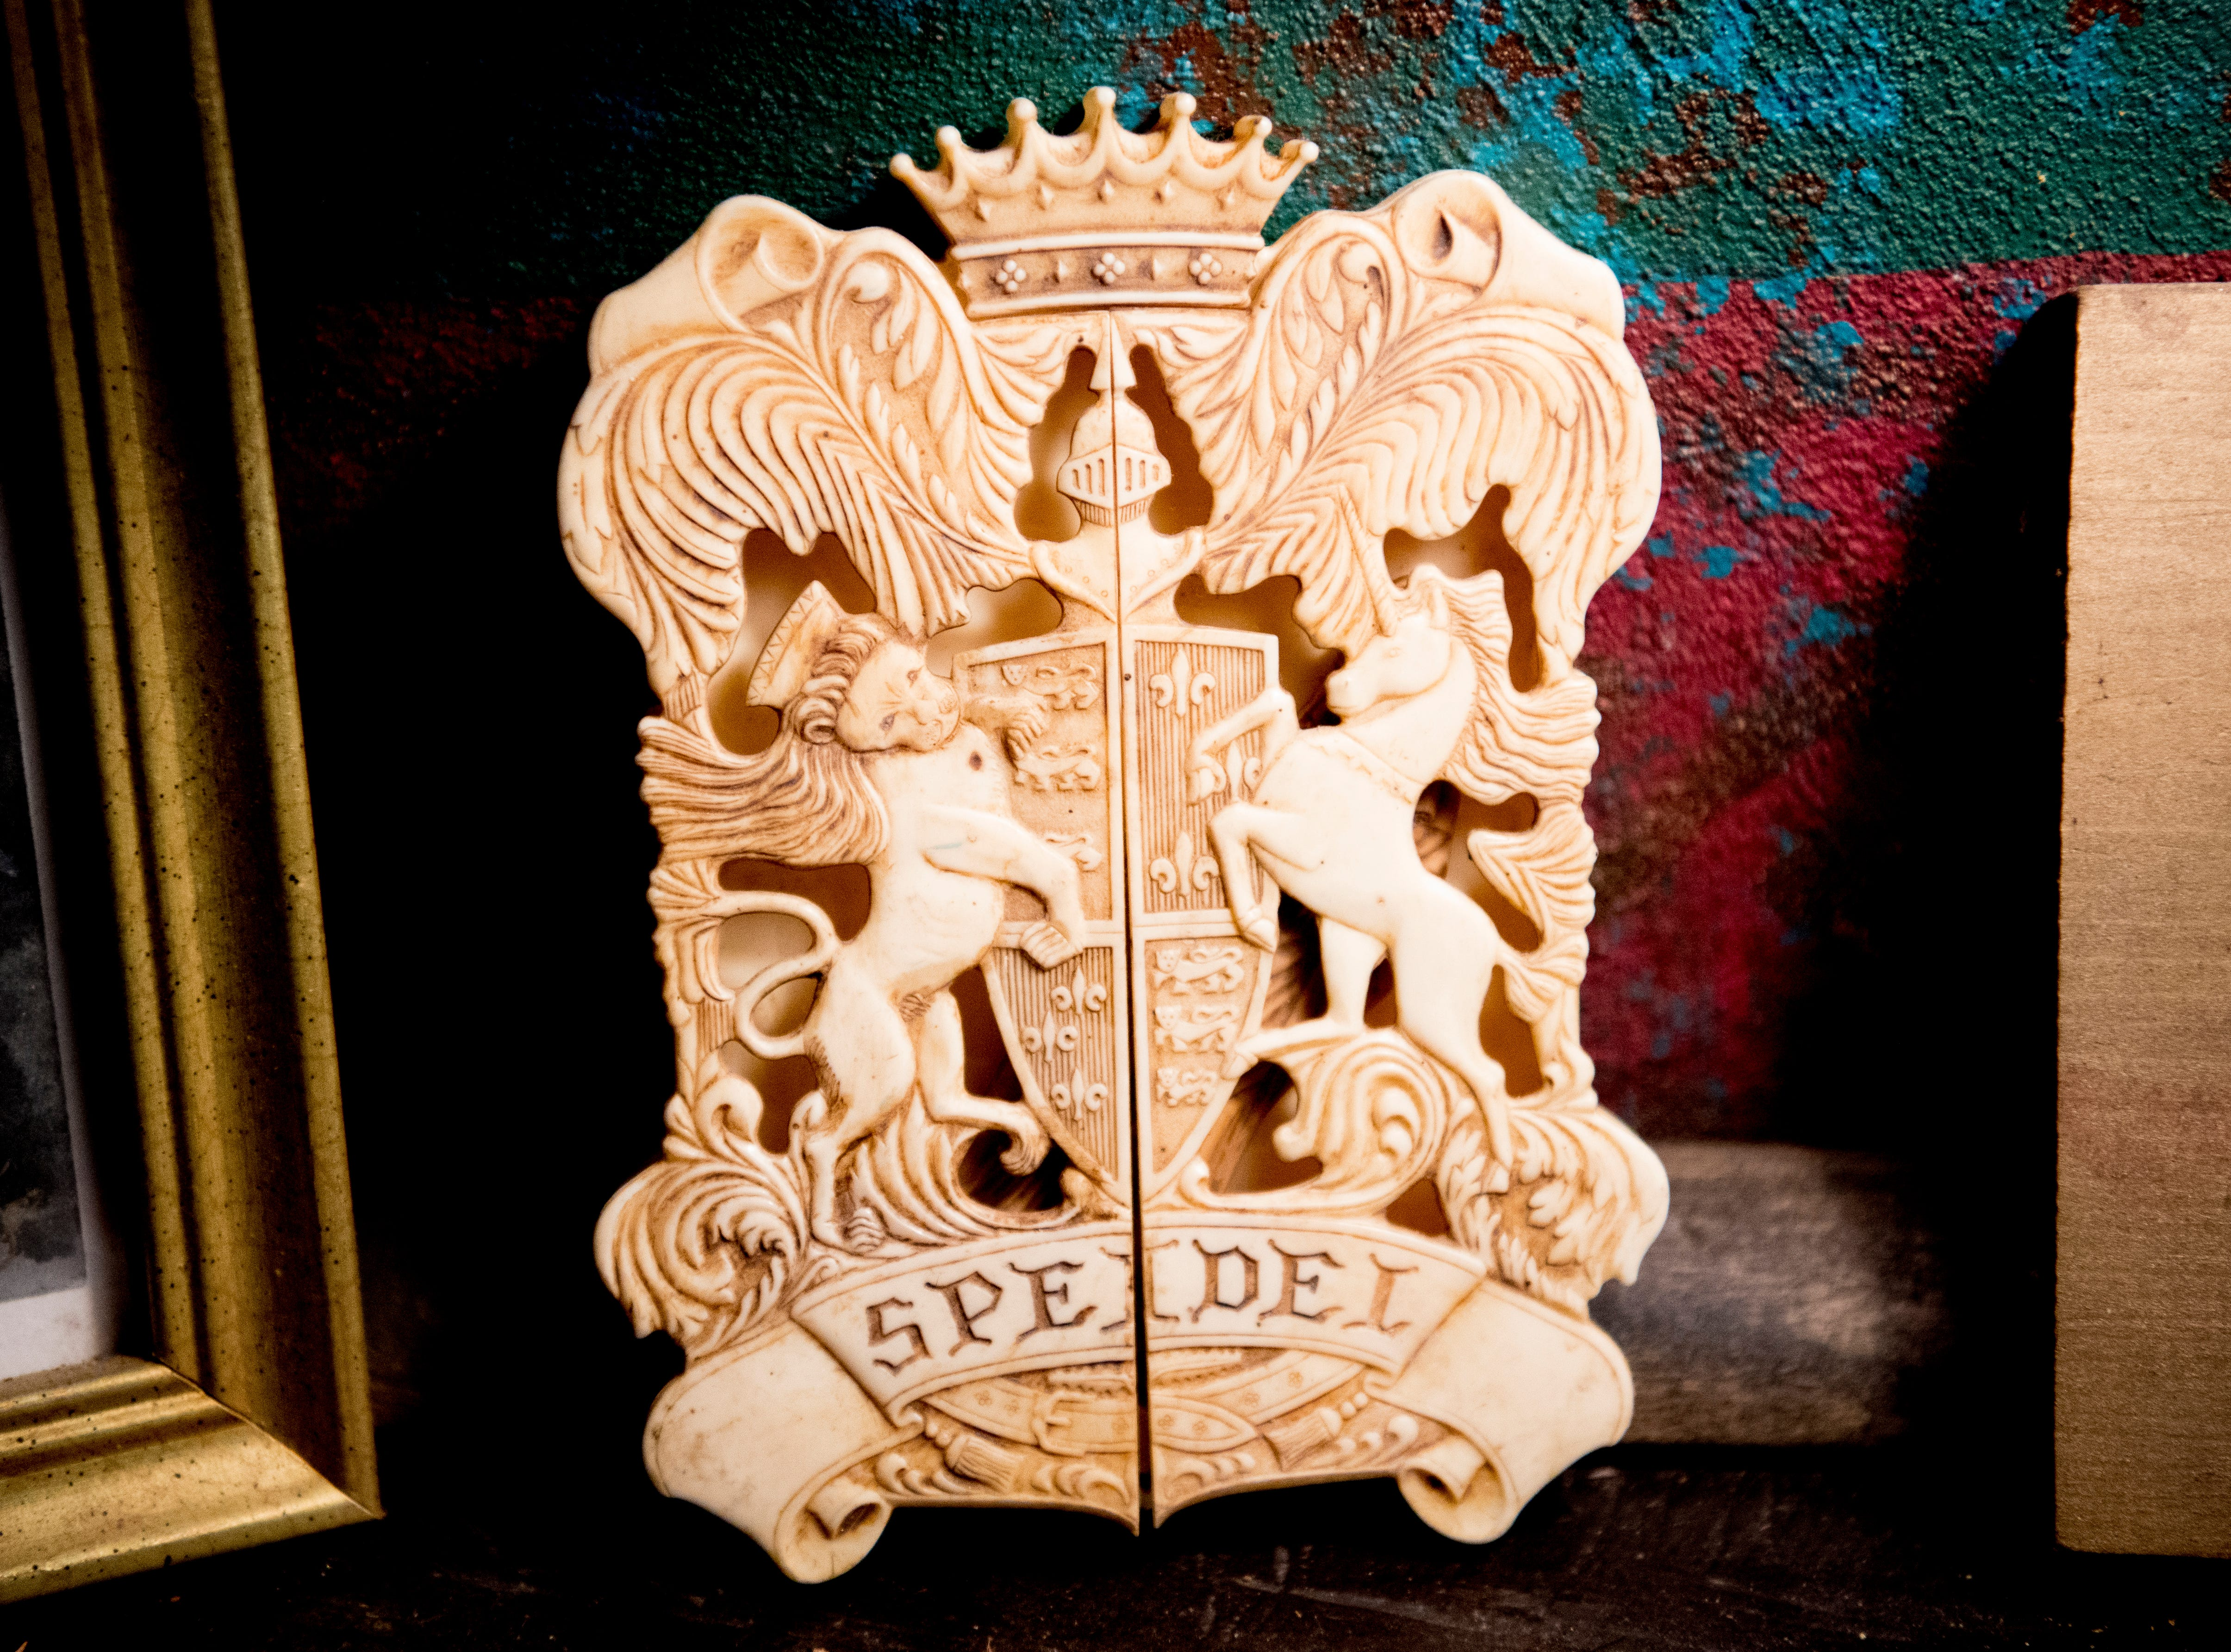 A Speidel family coat of arms inside Williamswood Castle in South Knoxville, Tennessee on Thursday, January 17, 2019. The home, modeled after a Scottish castle, was built by Julia Tucker in 1991 and took 6 years to complete. Many of the items in the home were sourced from around the Knoxville area.